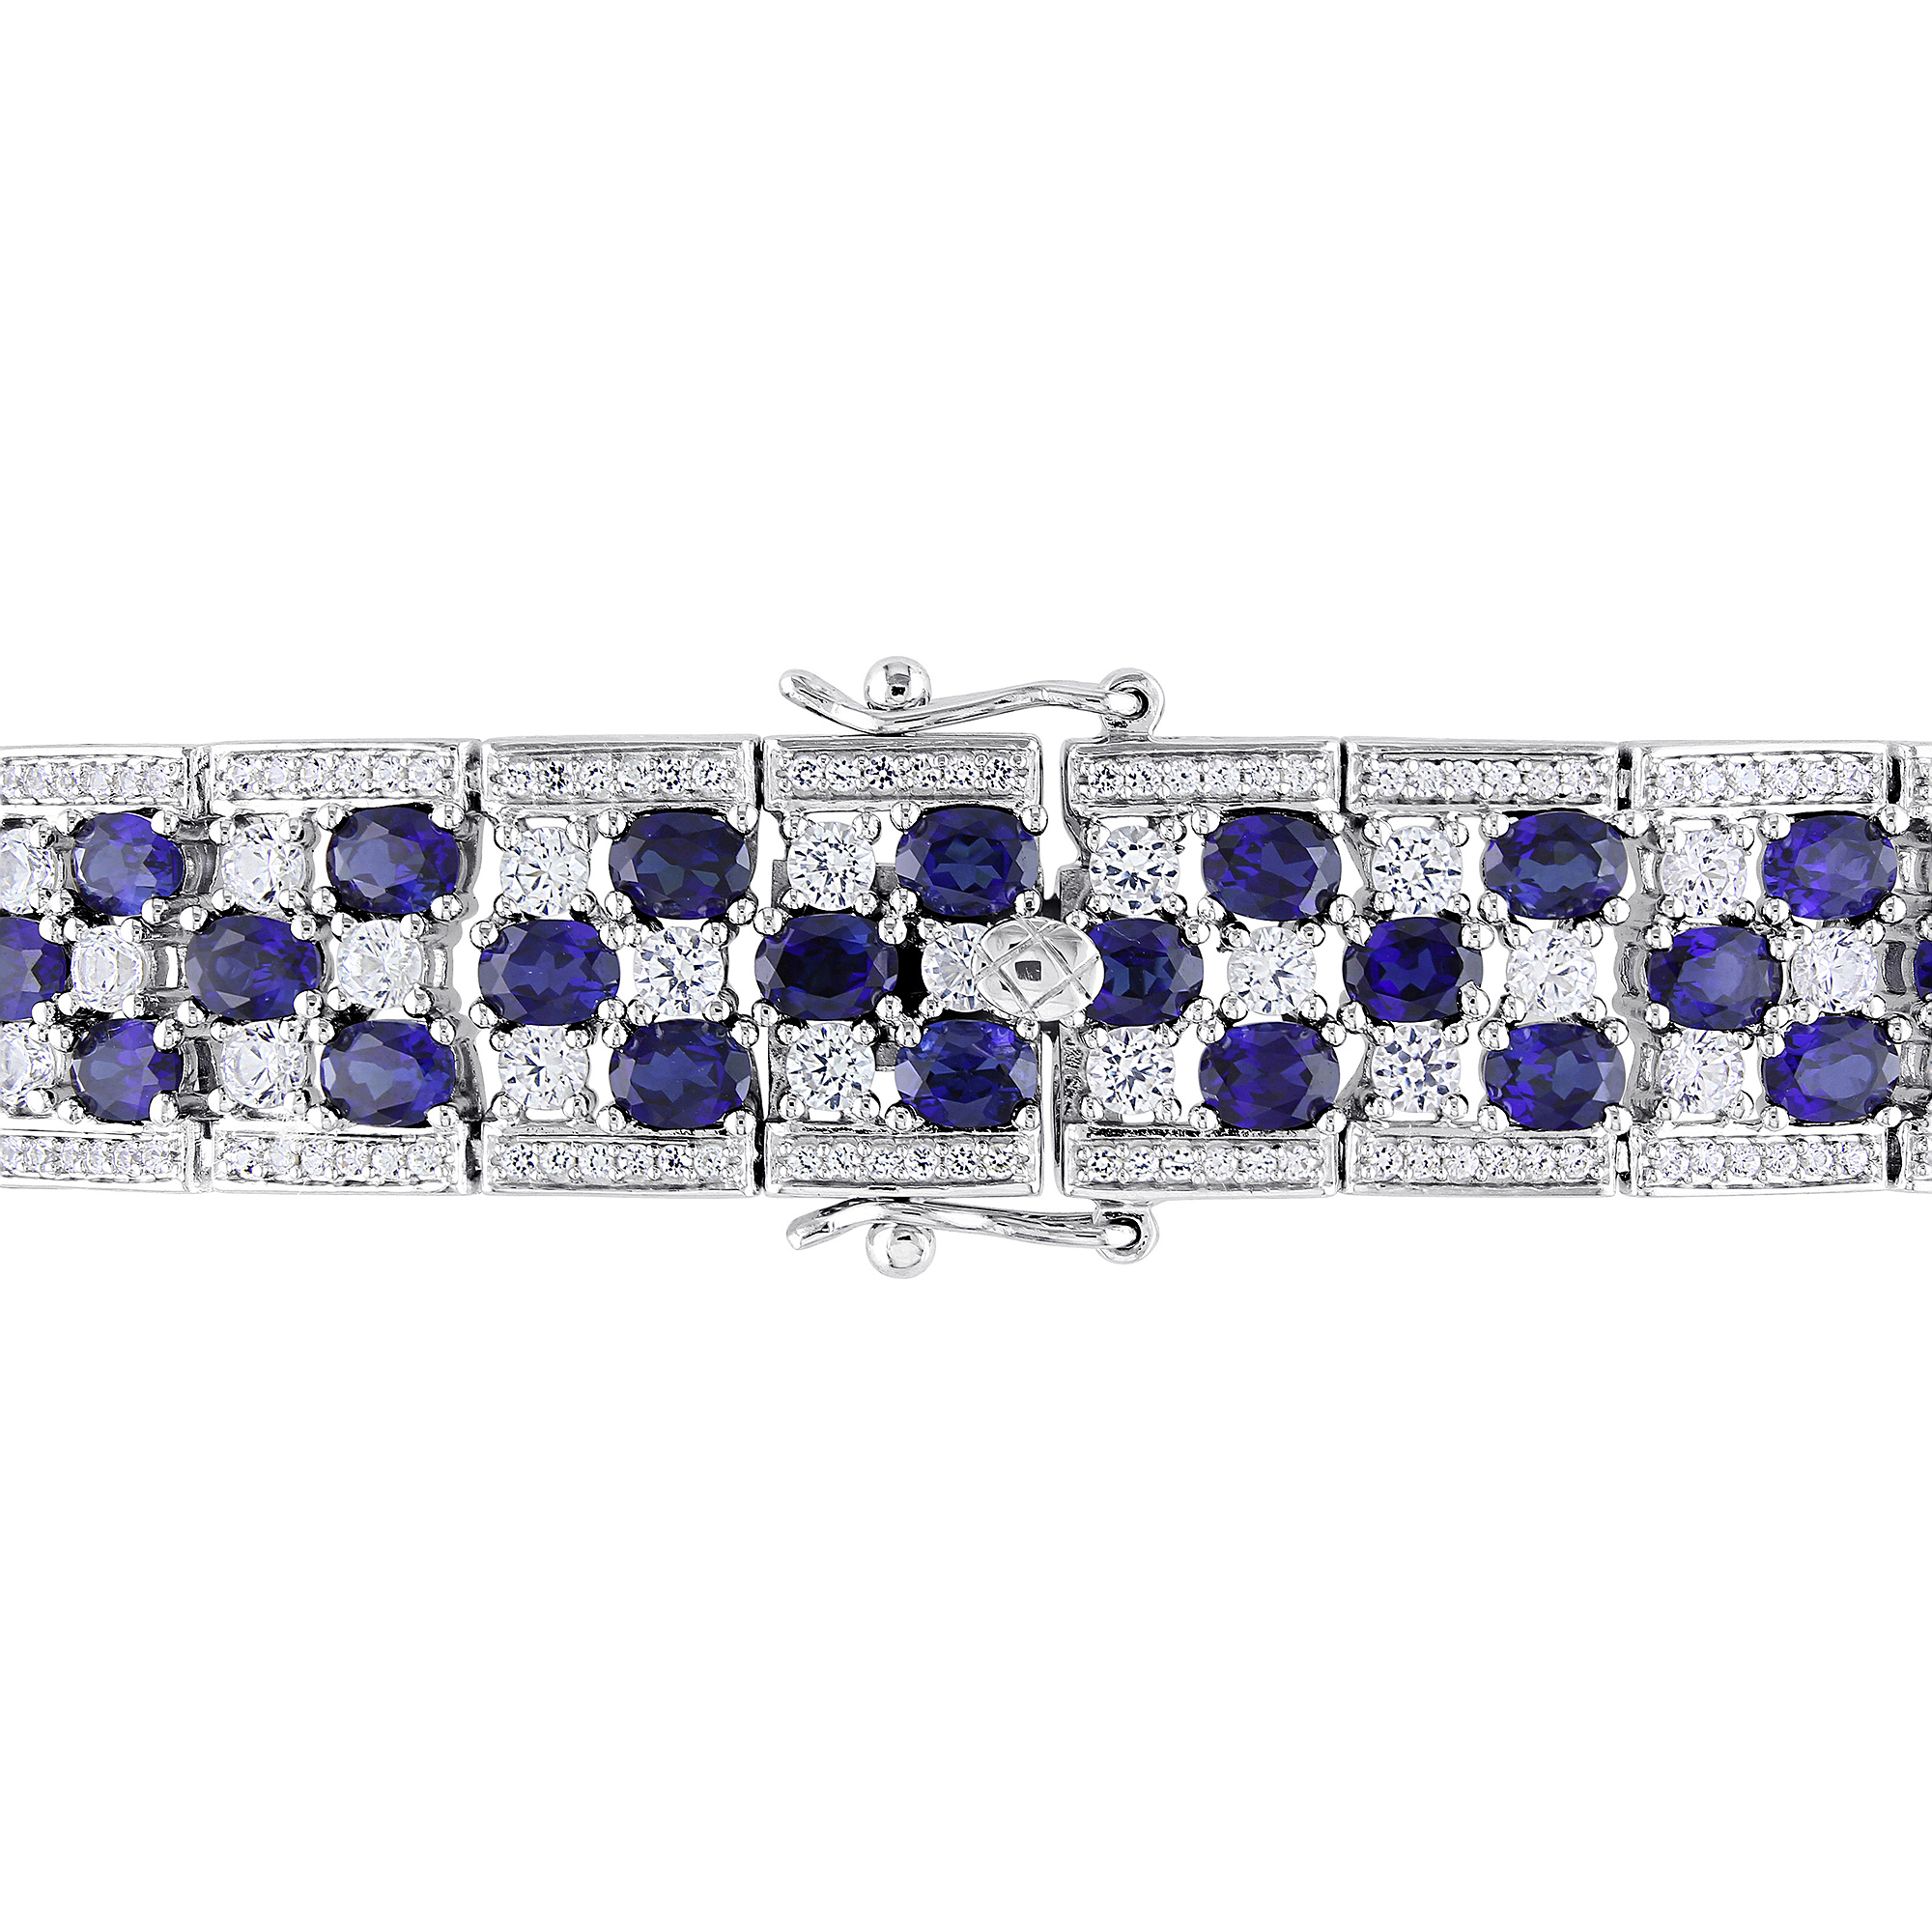 26-1/5 Carat T.G.W. Created Blue and White Sapphire Sterling Silver Fashion Bracelet, 7.25""